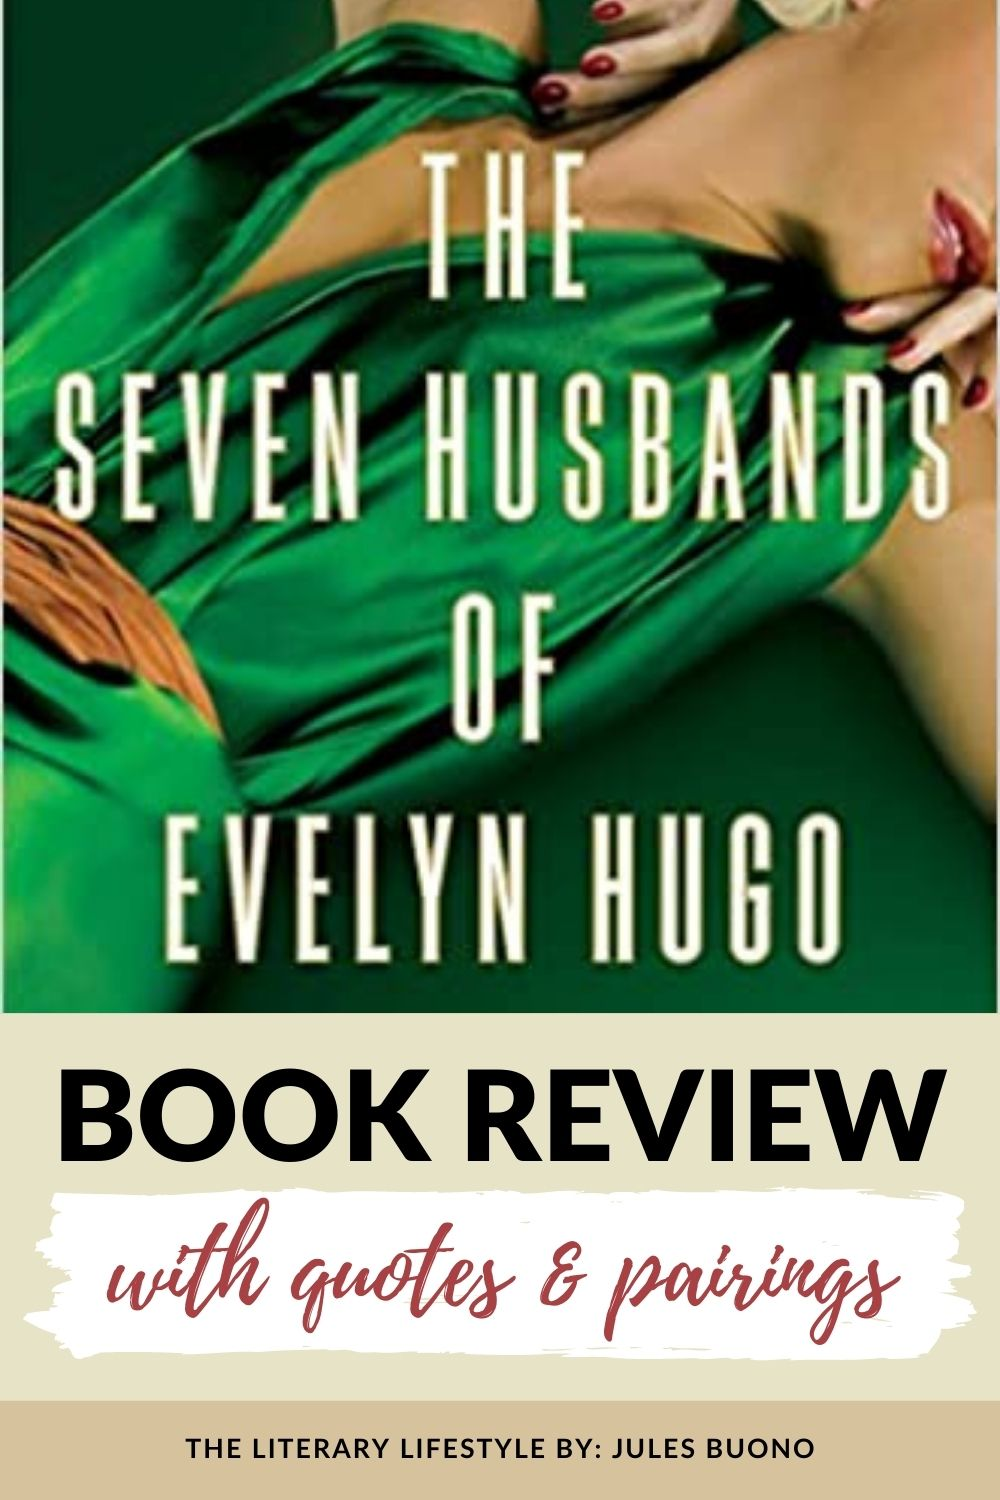 Book Review: The Seven Husbands of Evelyn Hugo